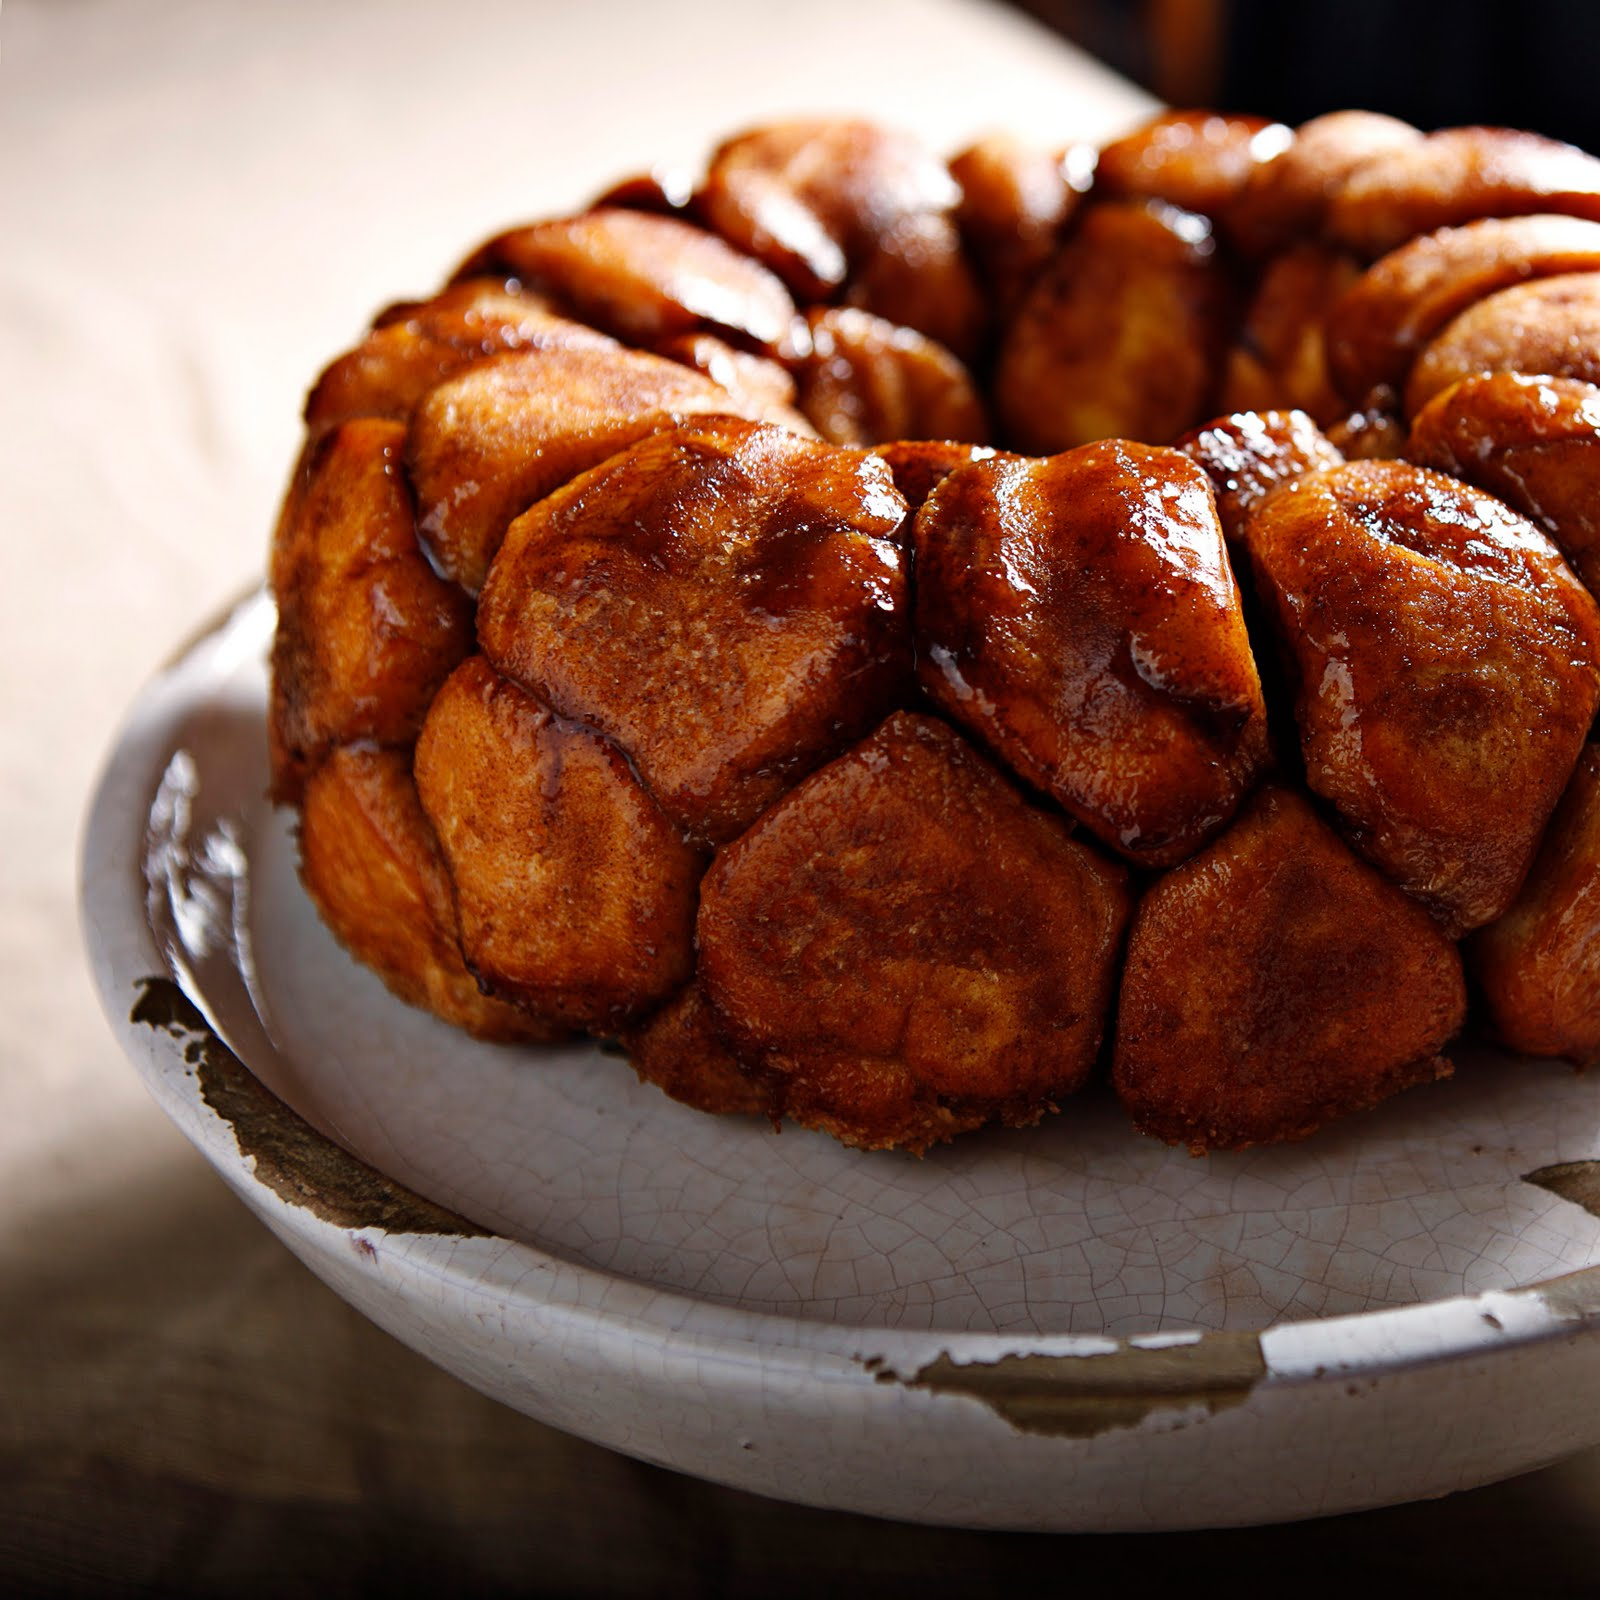 Confessions of a Bake-aholic: Monkey Bubble Bread